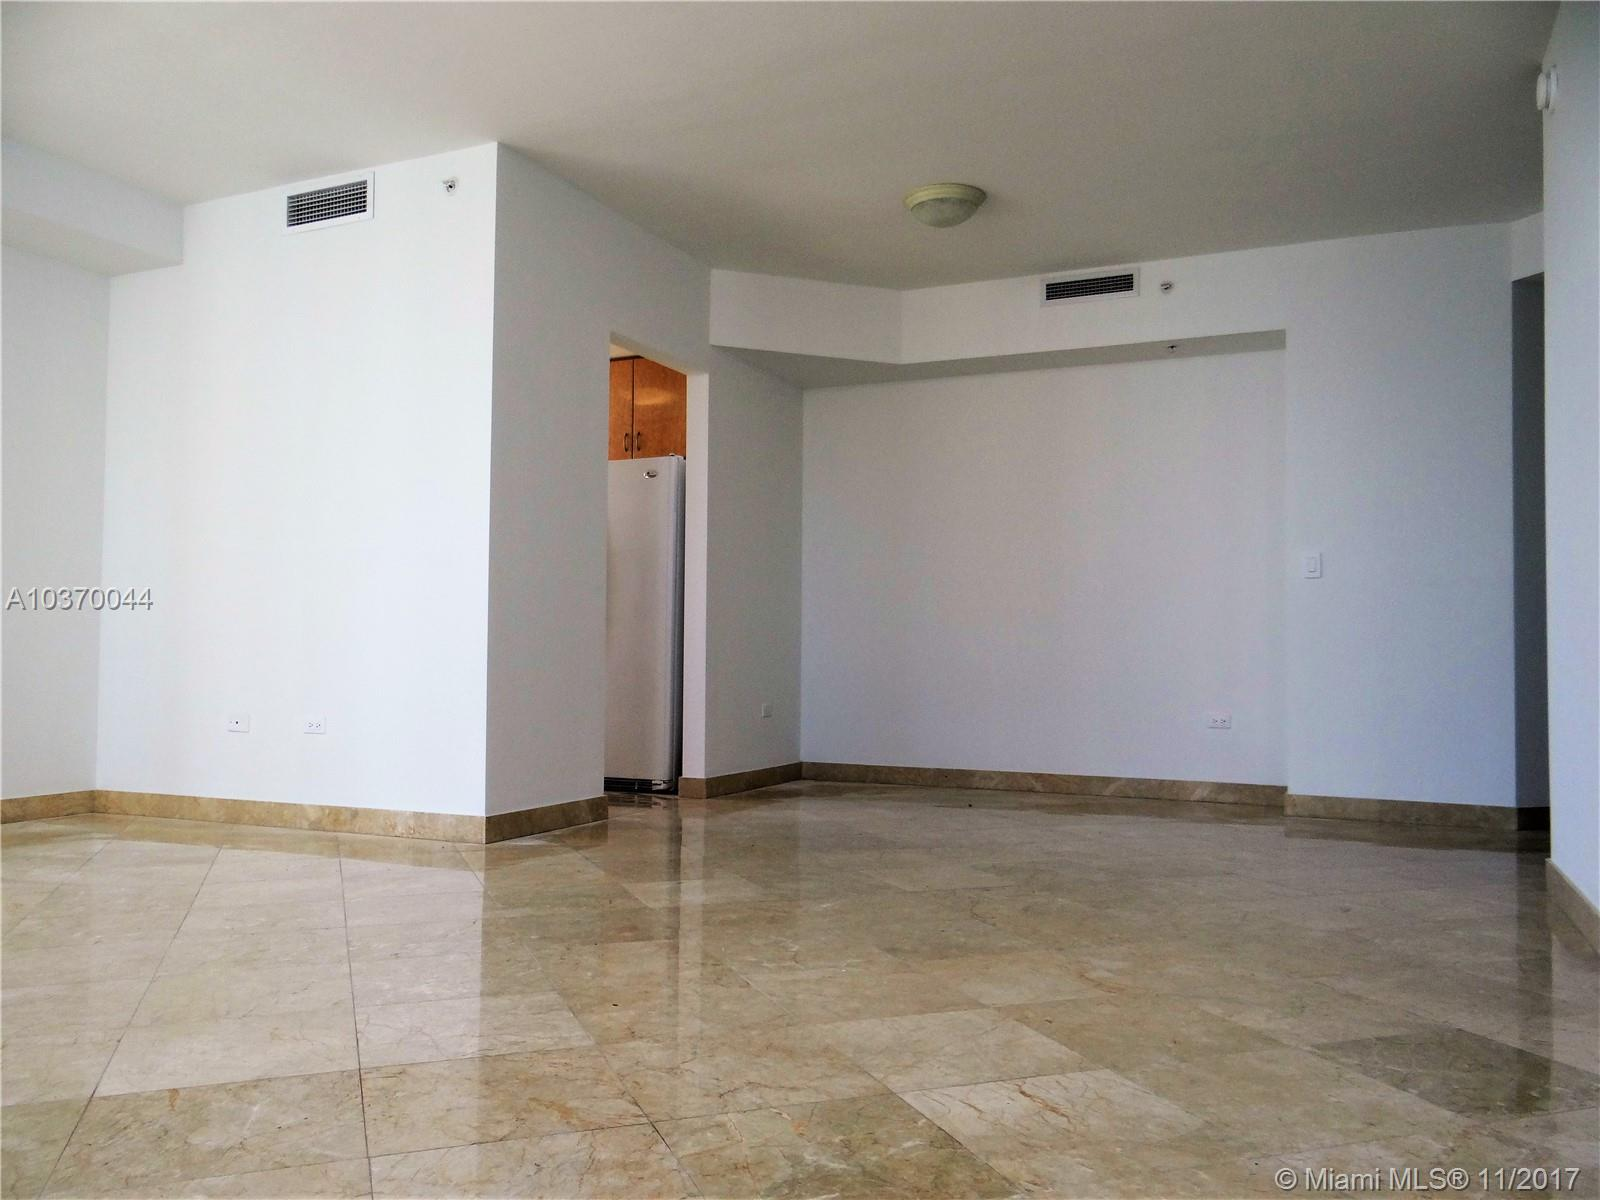 801 Brickell Key Blvd # 2811, Miami , FL 33131